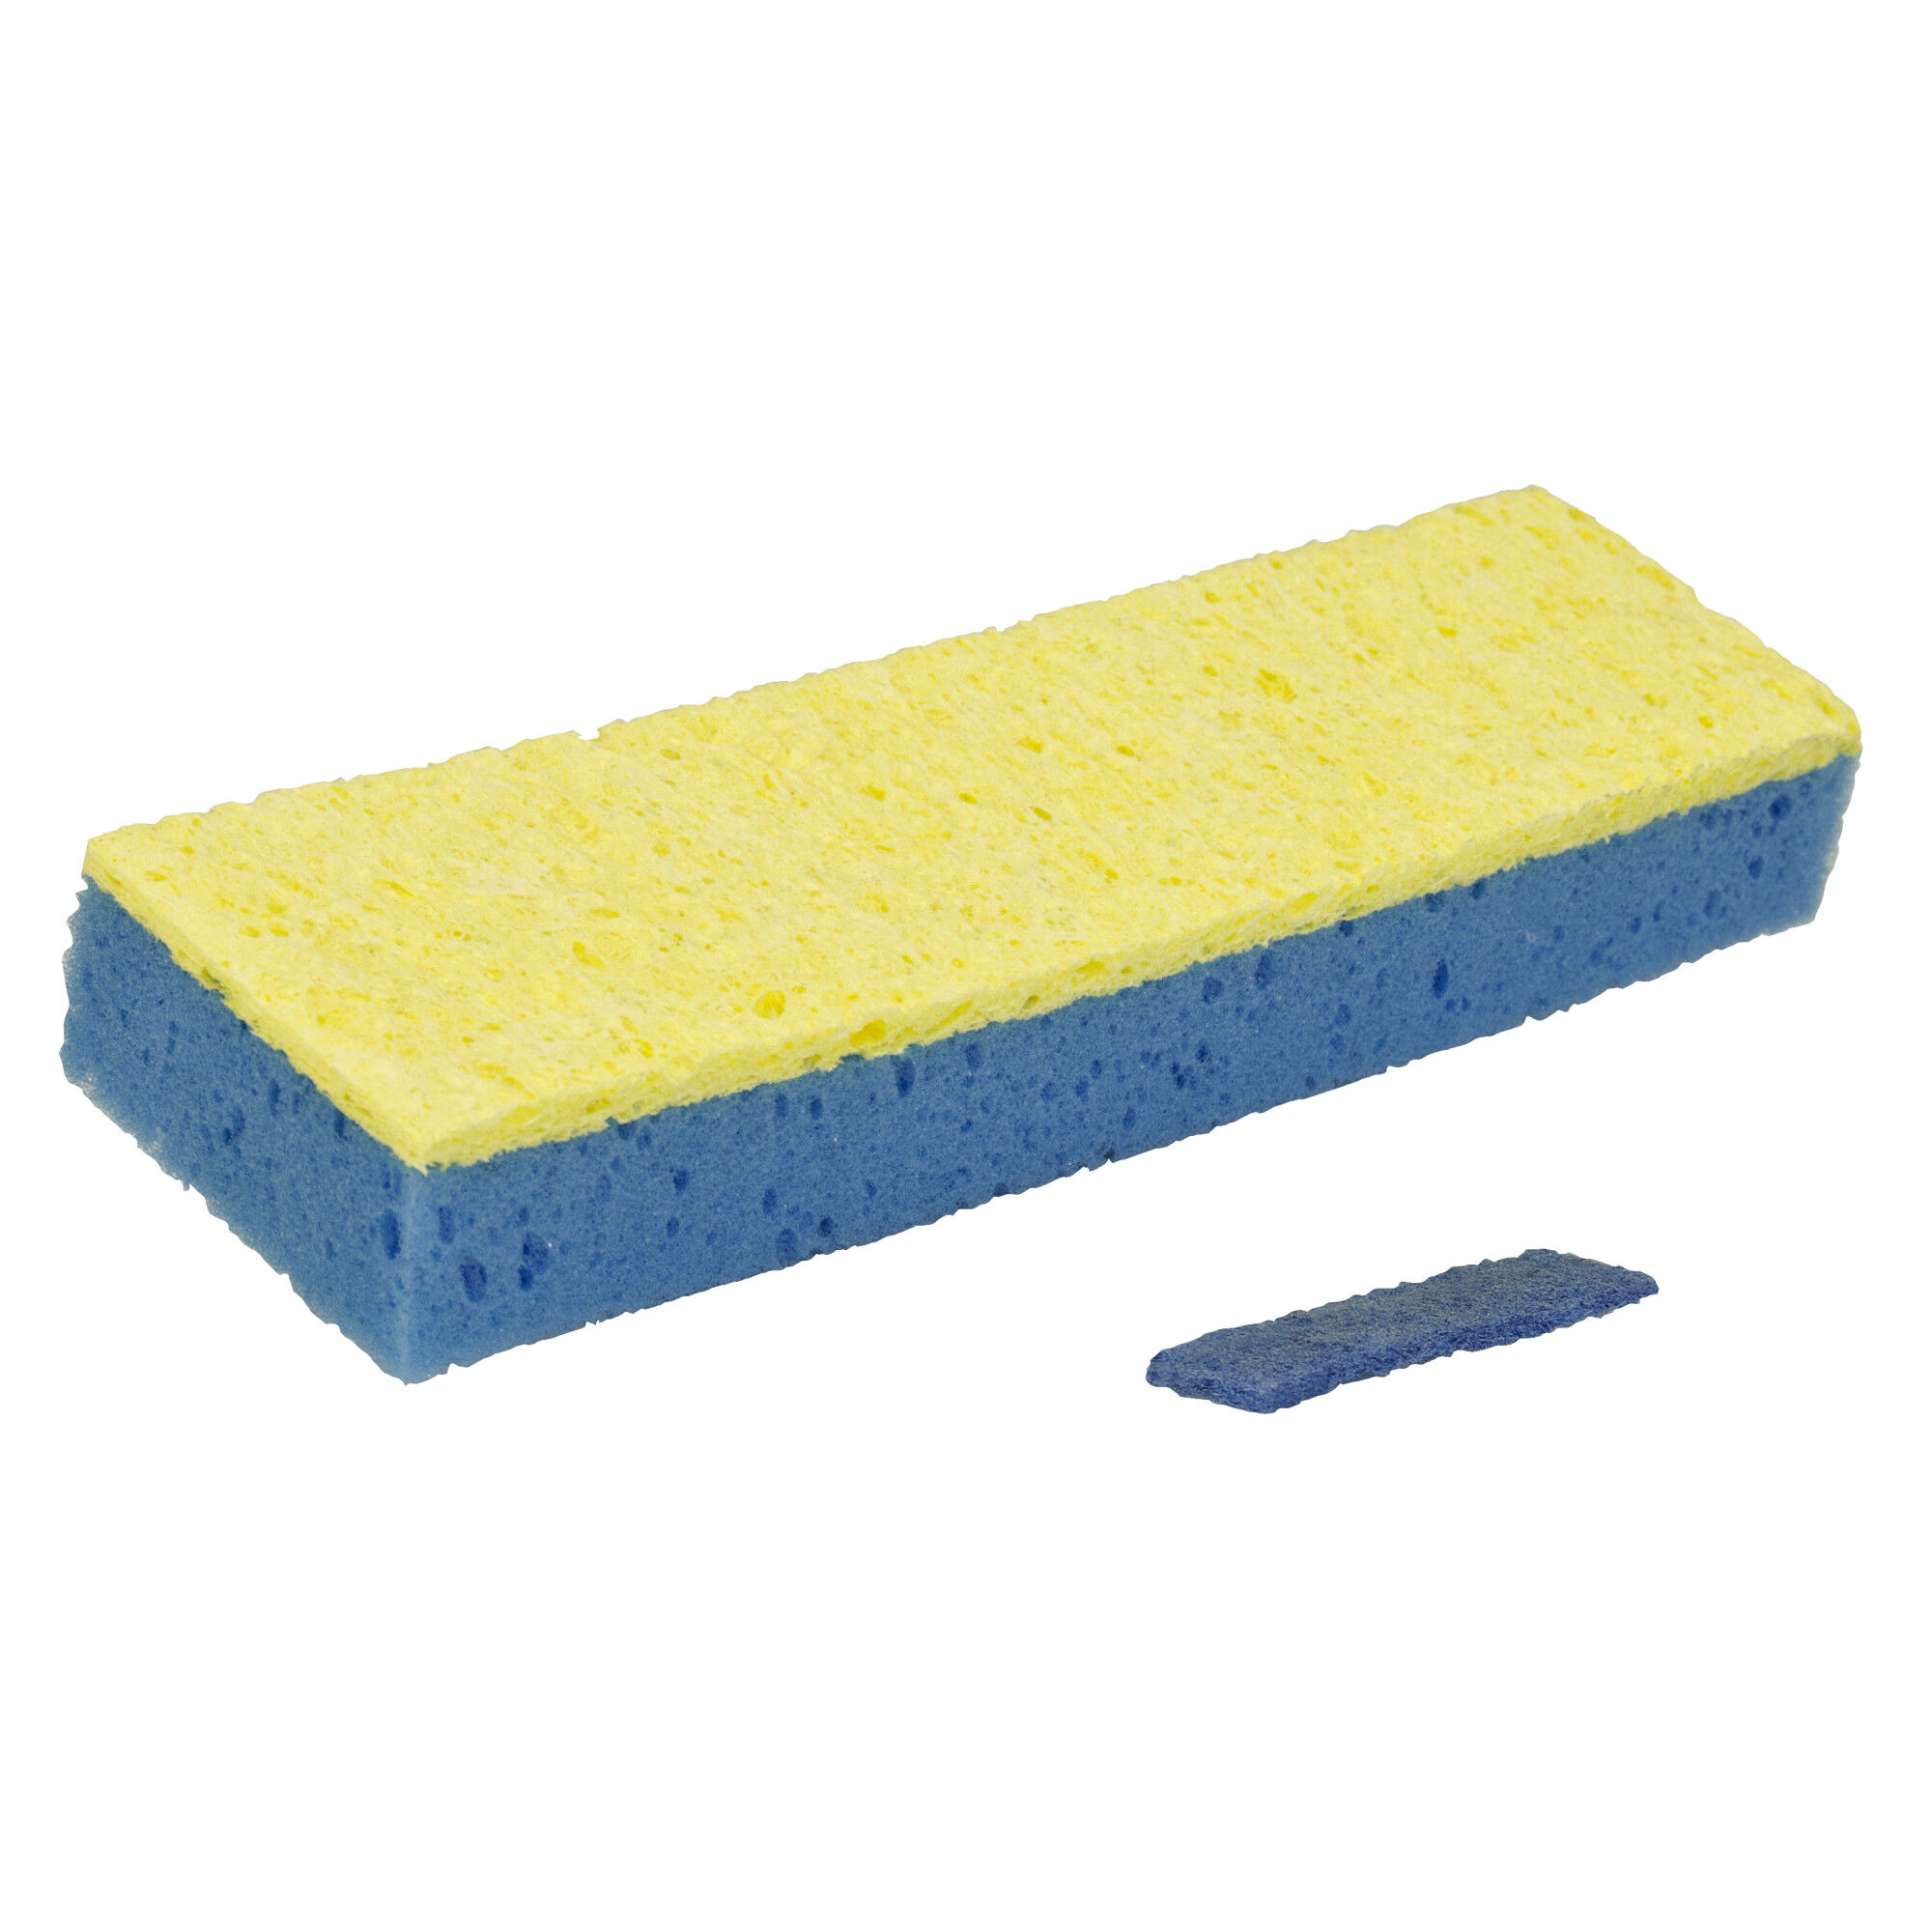 Sponge Mop Refill Quickie Cleaning Tools